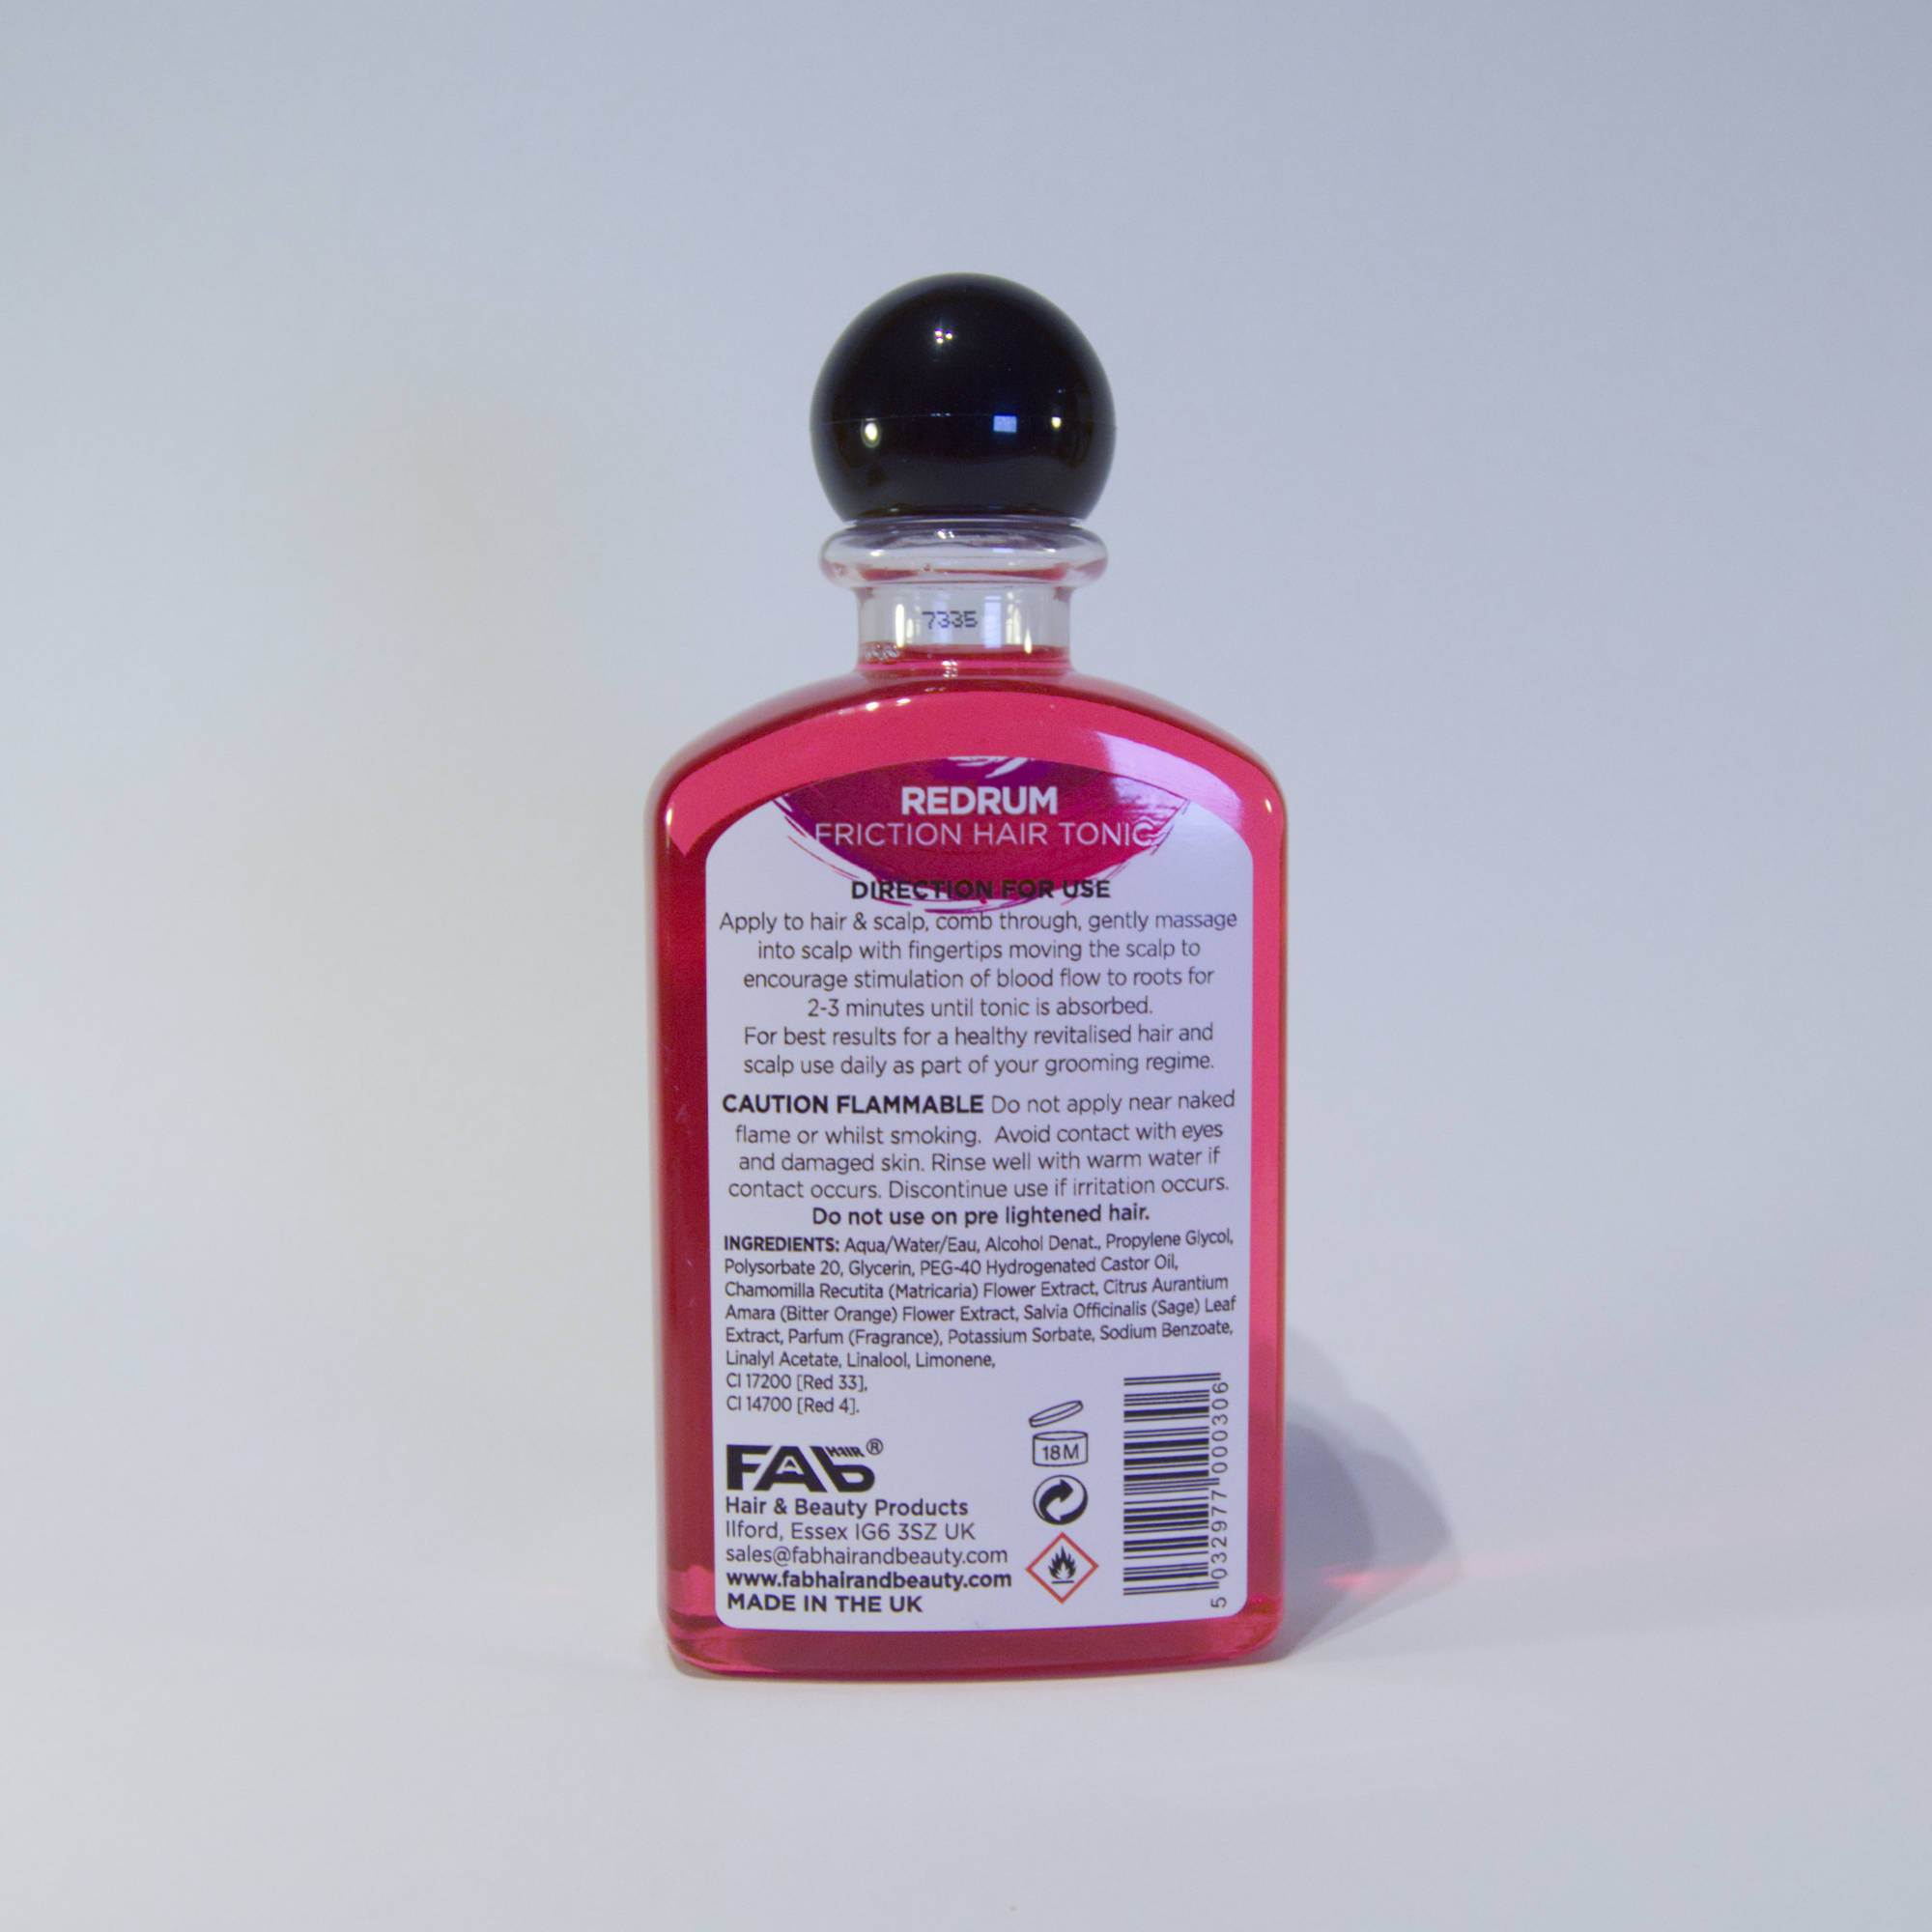 250ml bottle of Redrum flavoured FAB friction hair tonic (rear view)